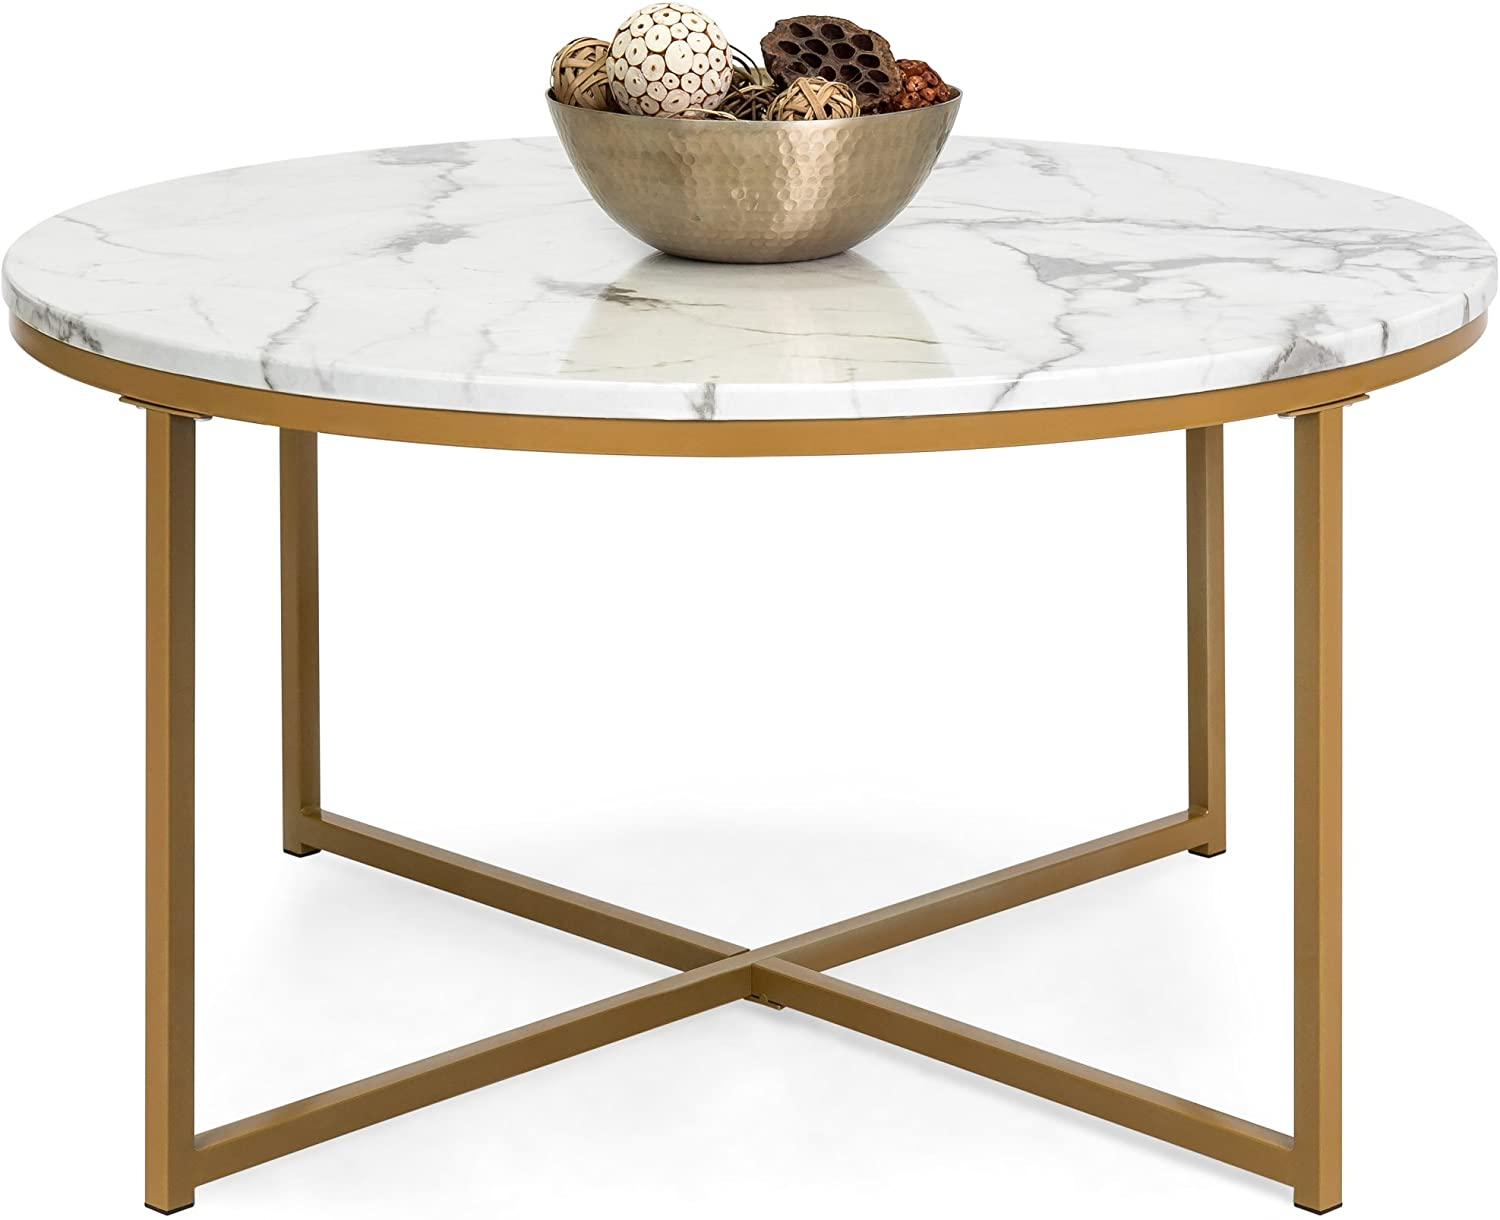 Rustic Dining Room Table For 10